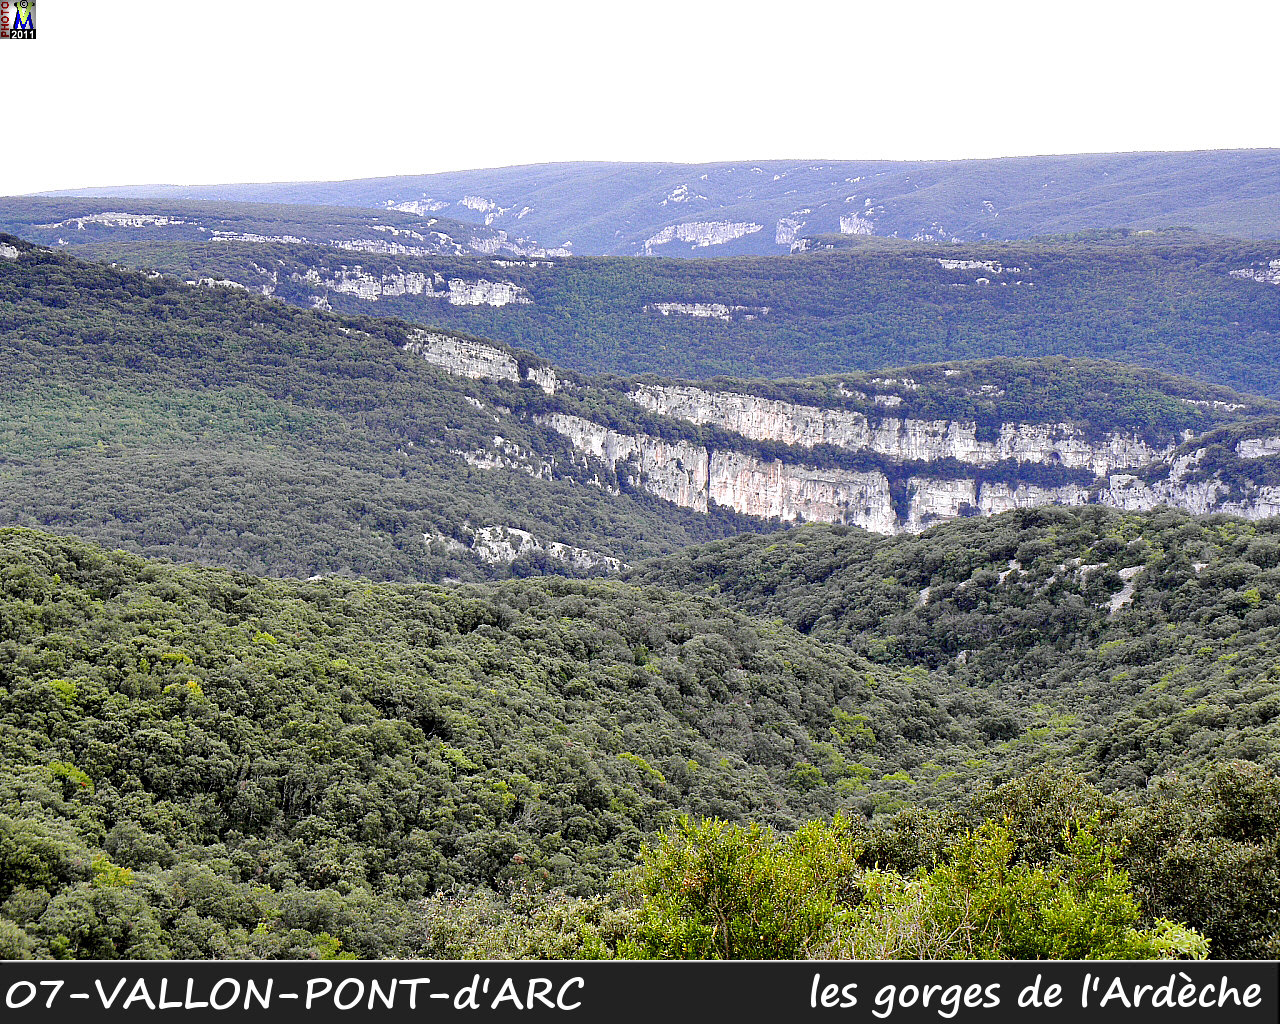 07VALLON-PONT-ARC_gorges_126.jpg